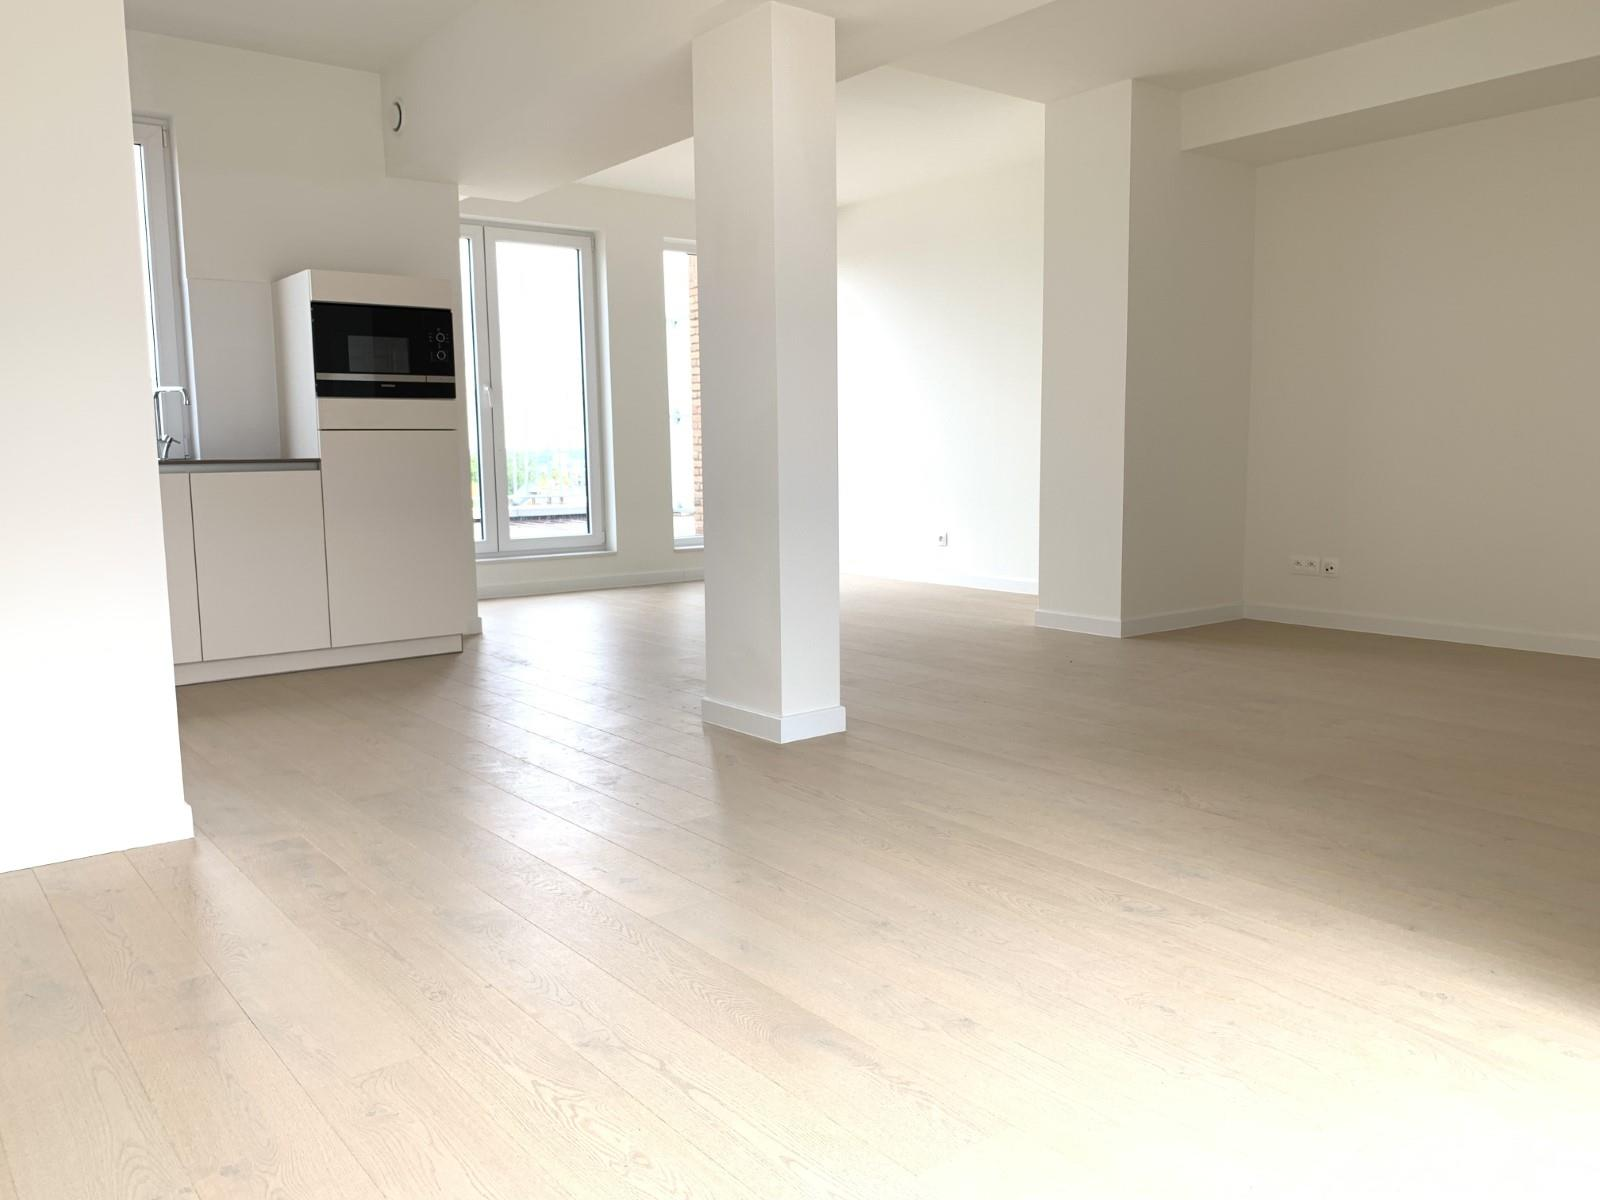 Appartement exceptionnel - Schaerbeek - #3875201-14